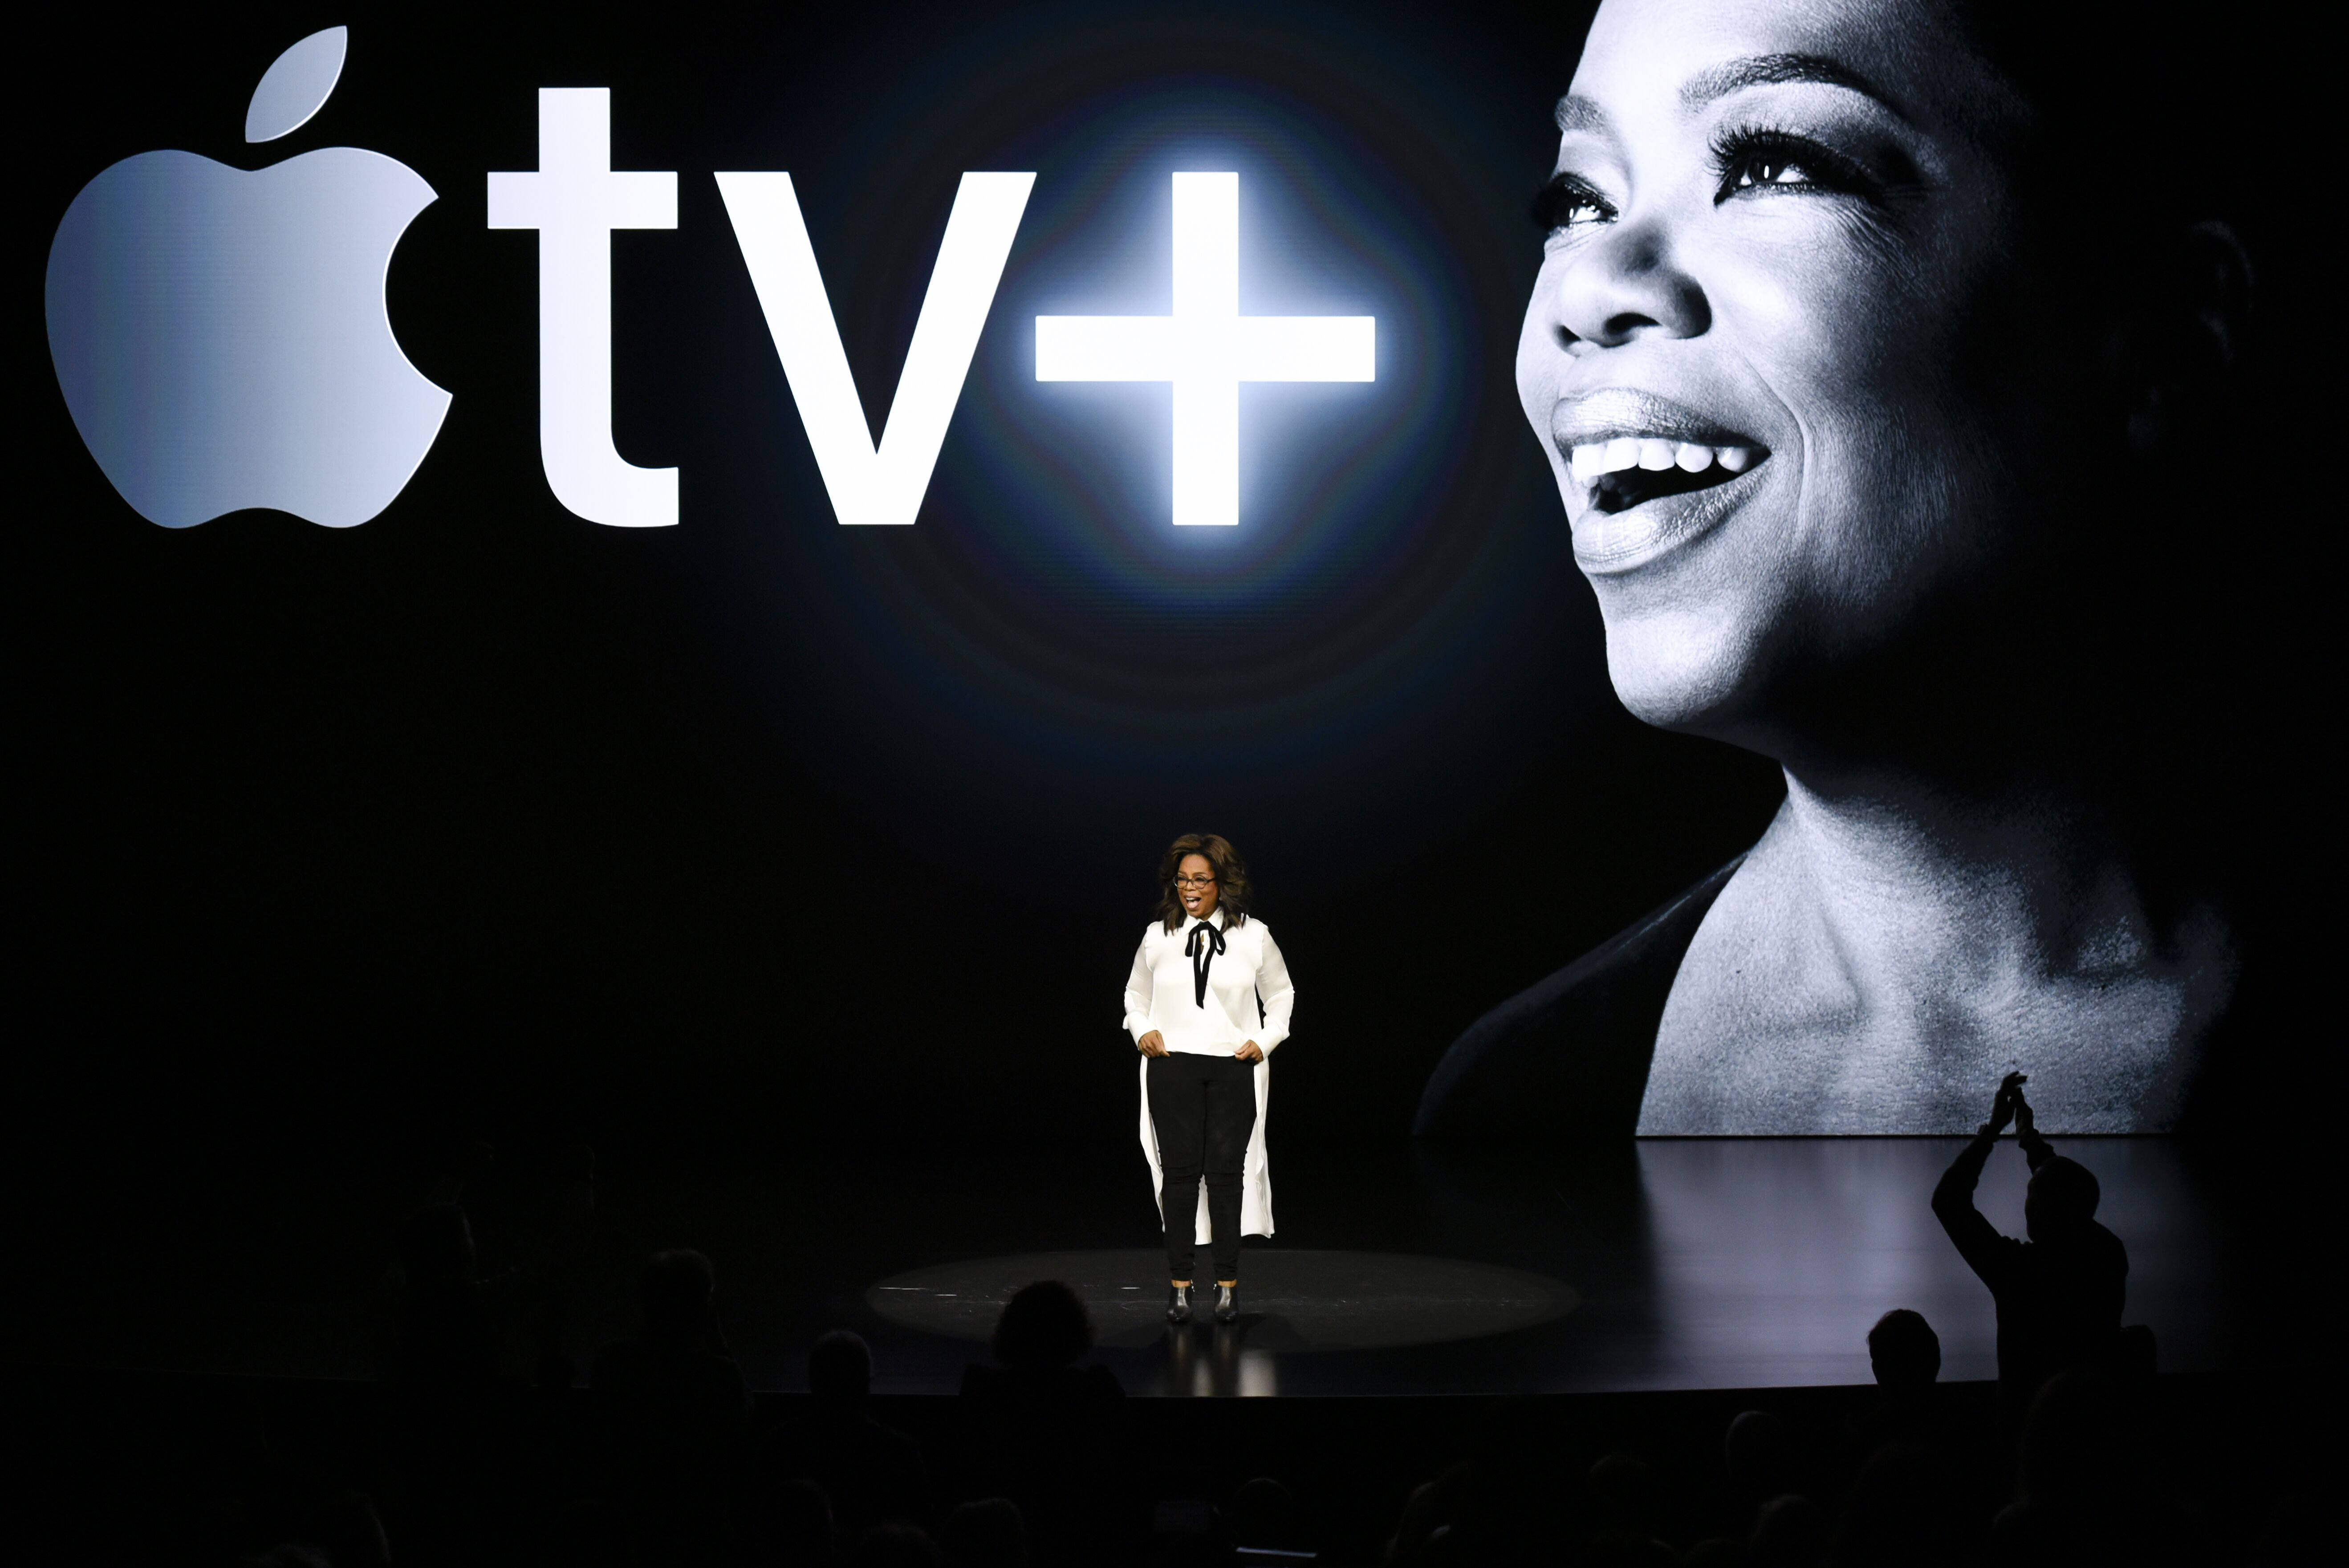 Oprah Winfrey at Apple headquarters on March 25, 2019, in Cupertino, California/ Source: Getty Images